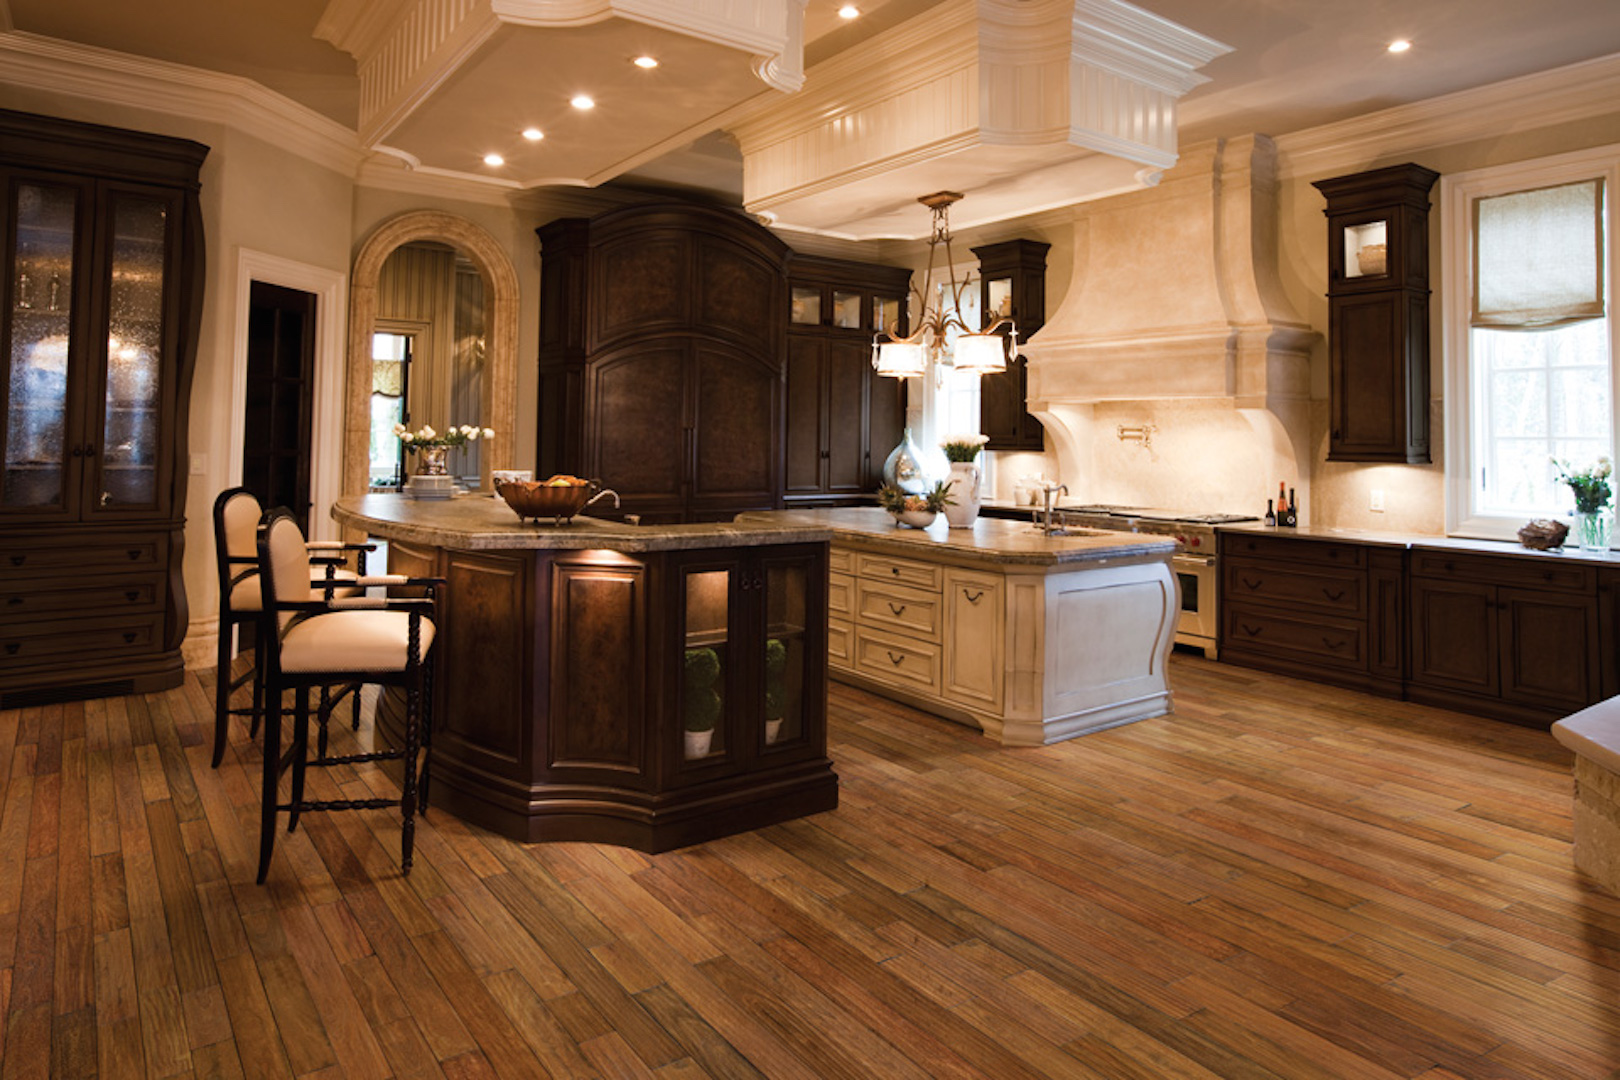 Trends In Kitchen Flooring Kitchen Remodeling Trends For 2014 Tampa Flooring Company